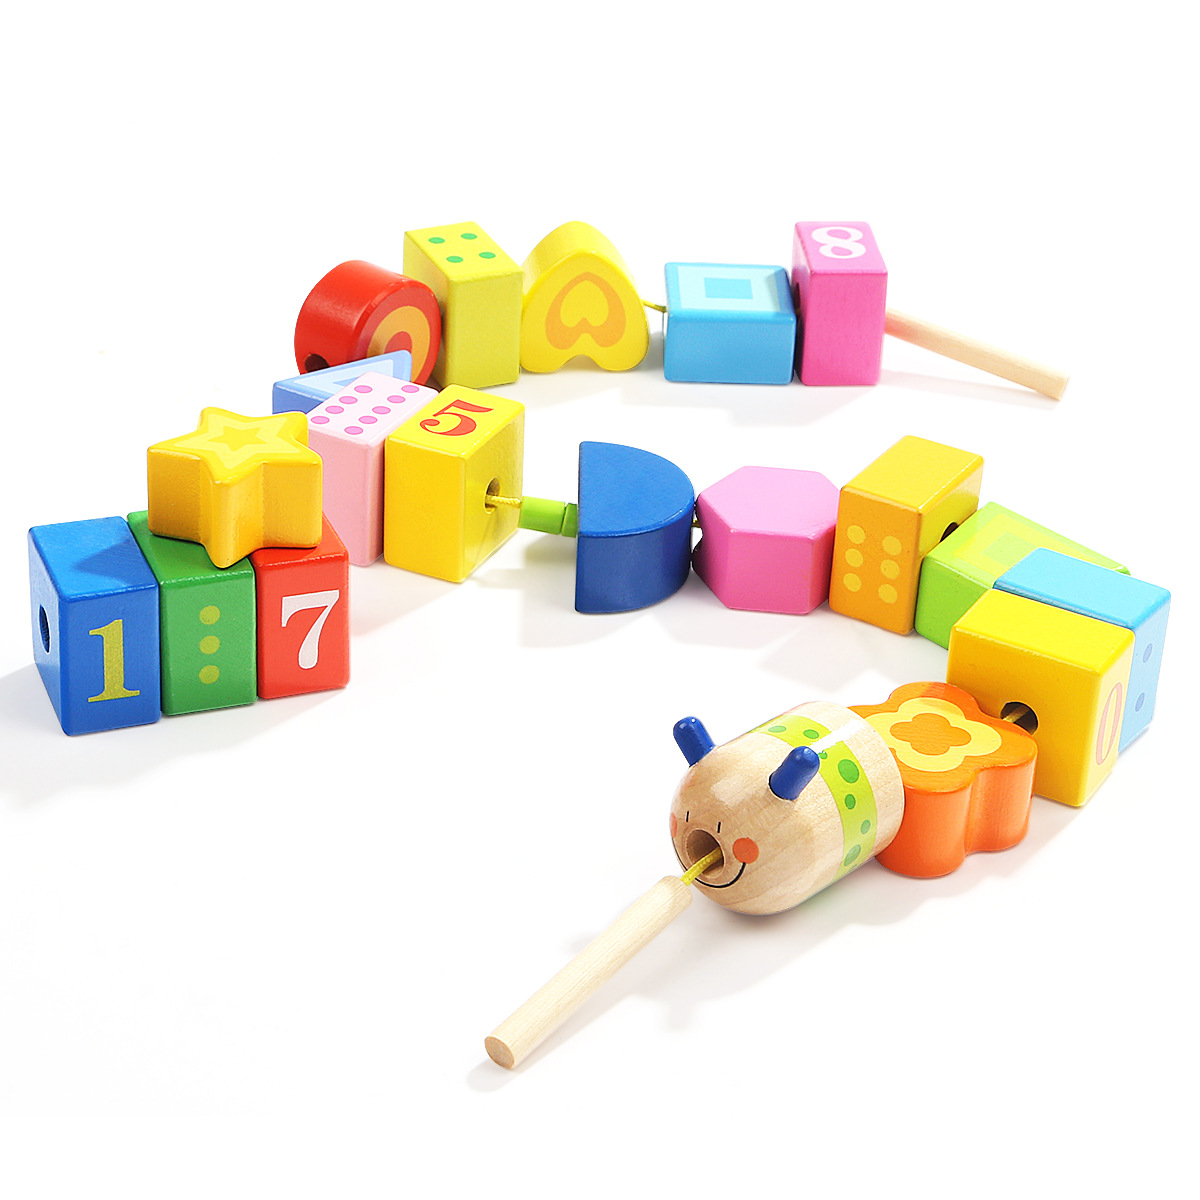 1-2-3-Year-Old Building Blocks Beads Baby Children Chuan Chuan Zhu Toy Educational Wear Threading Or Two-Year-Old Men's Non-Unis